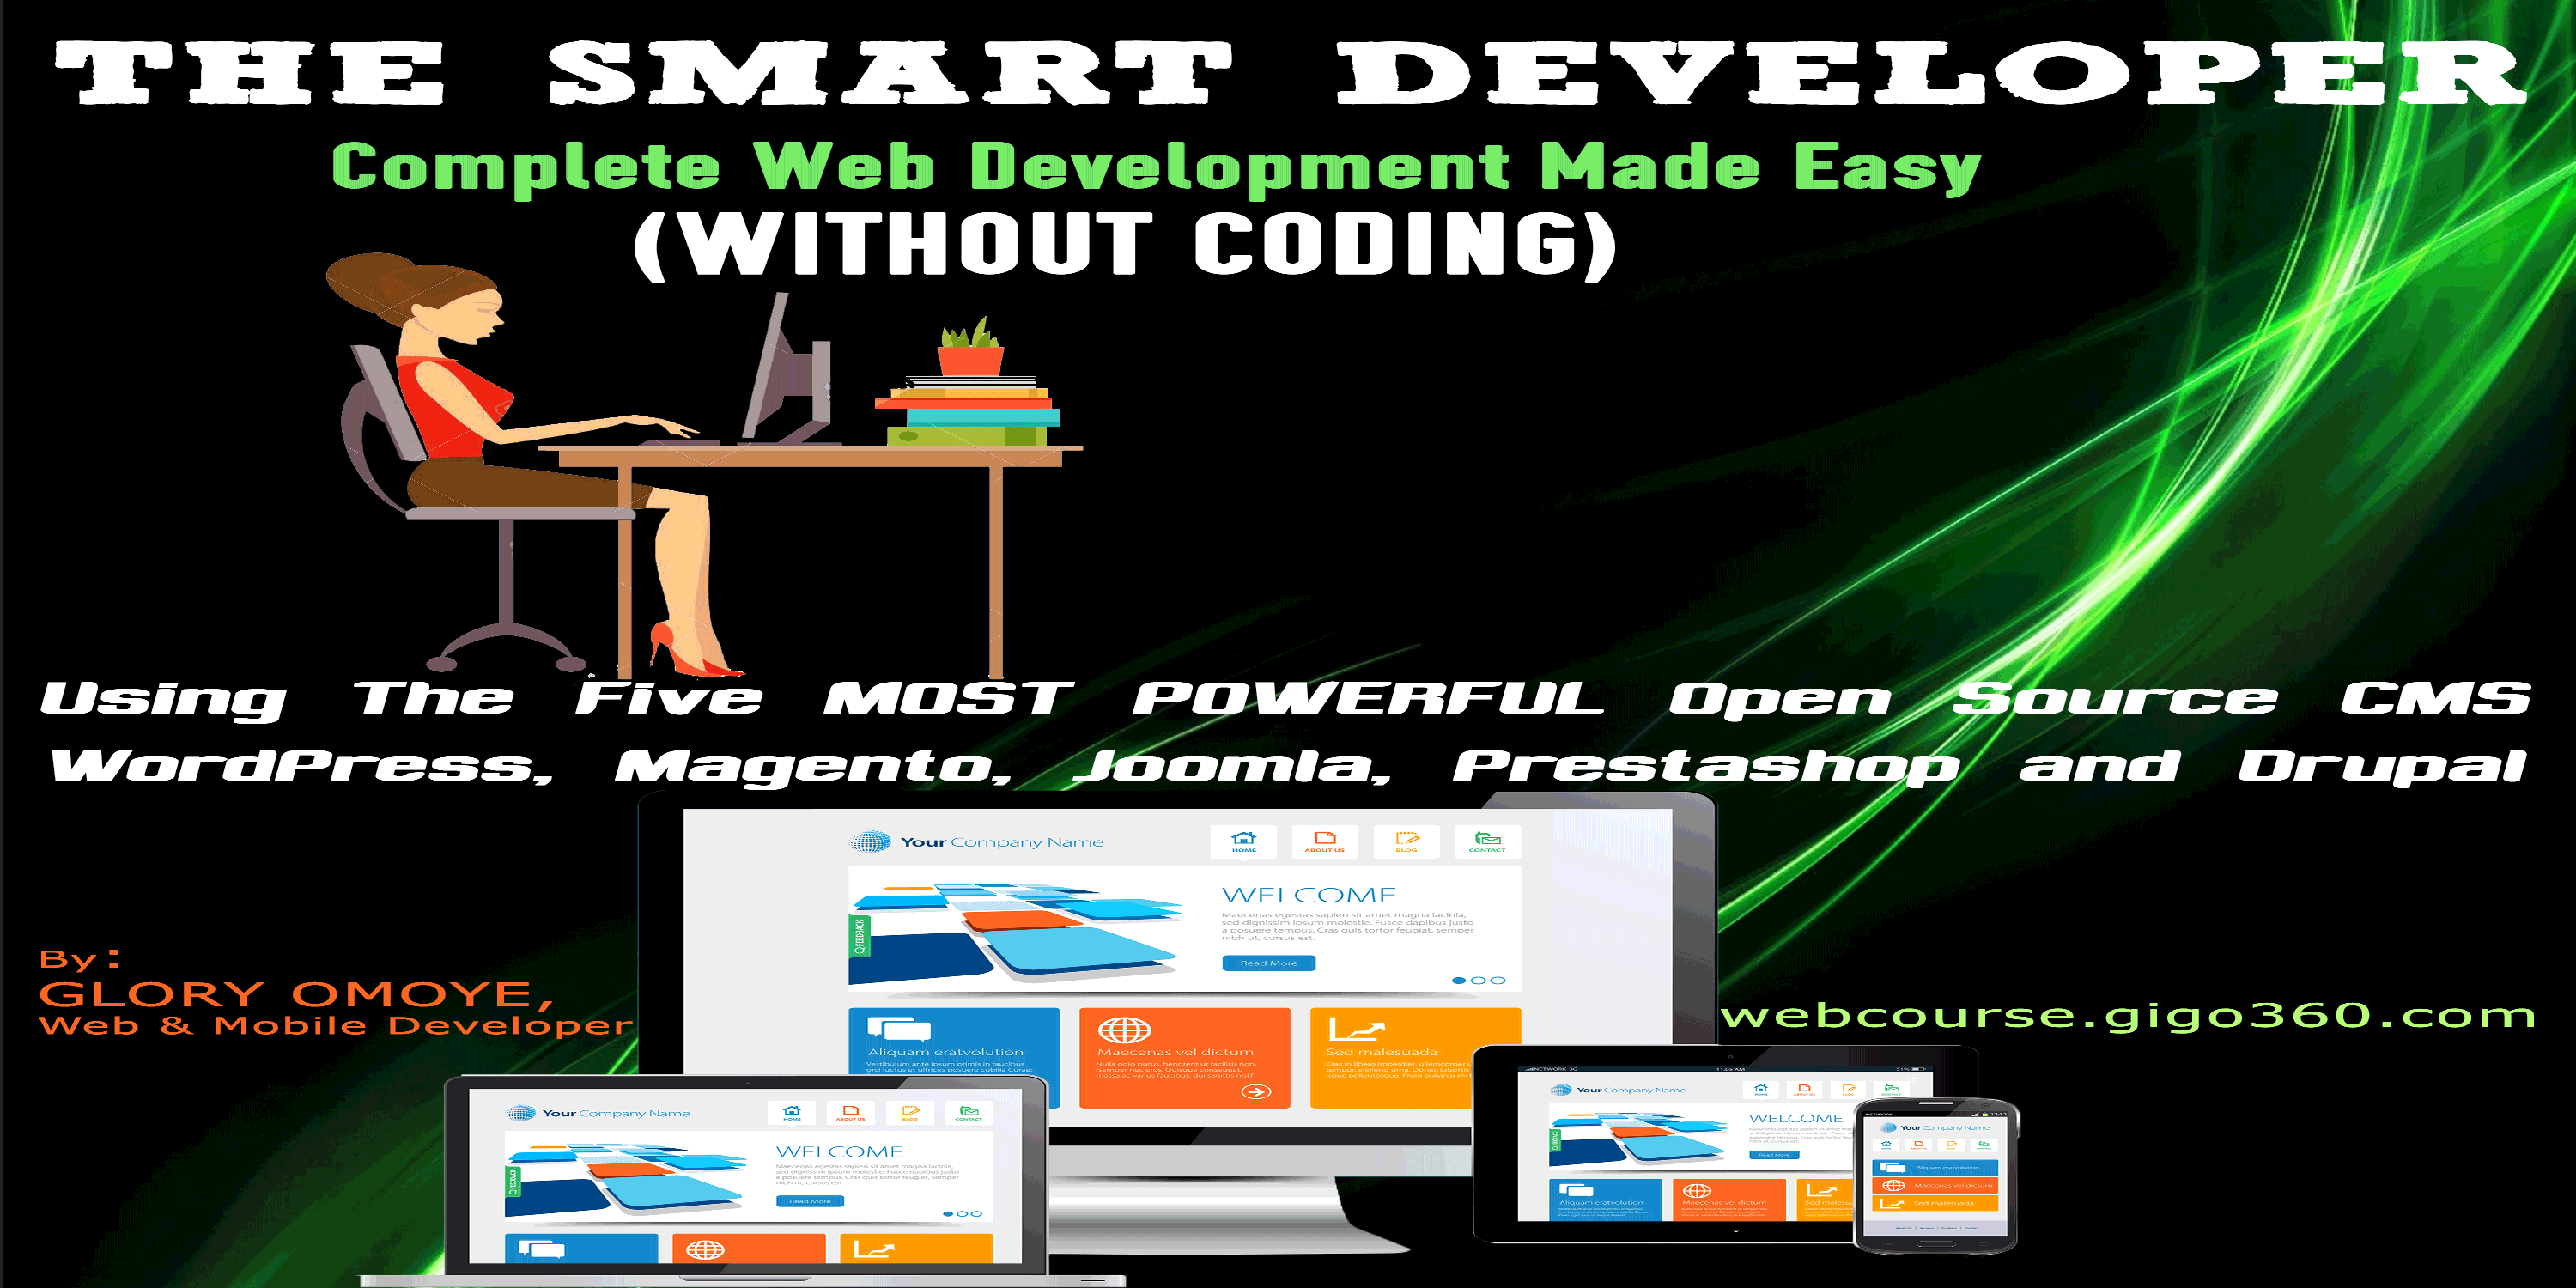 WordPress, Magento, Joomla & Drupal Websites Design and Development Course 2018